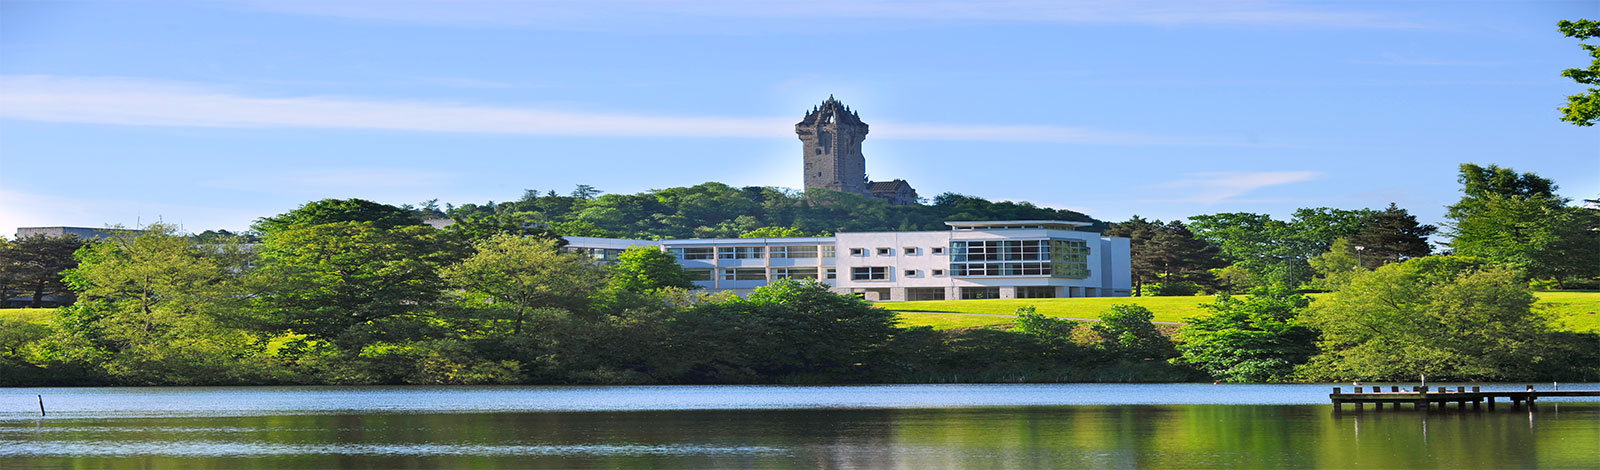 The University of Stirling